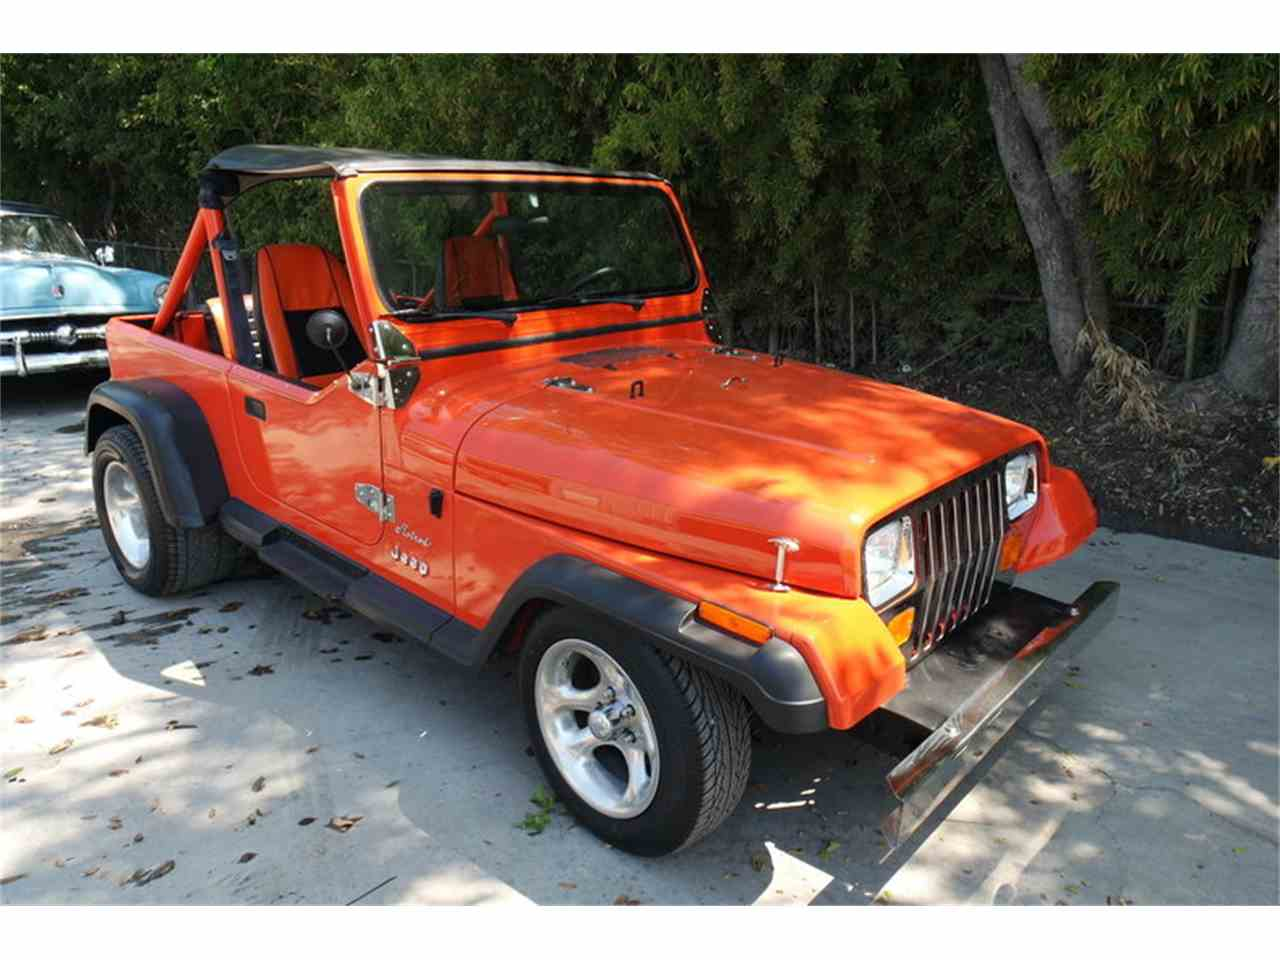 and wrangler vlp new austin sale jeep for image lease offers texas gallery pricing tx finance